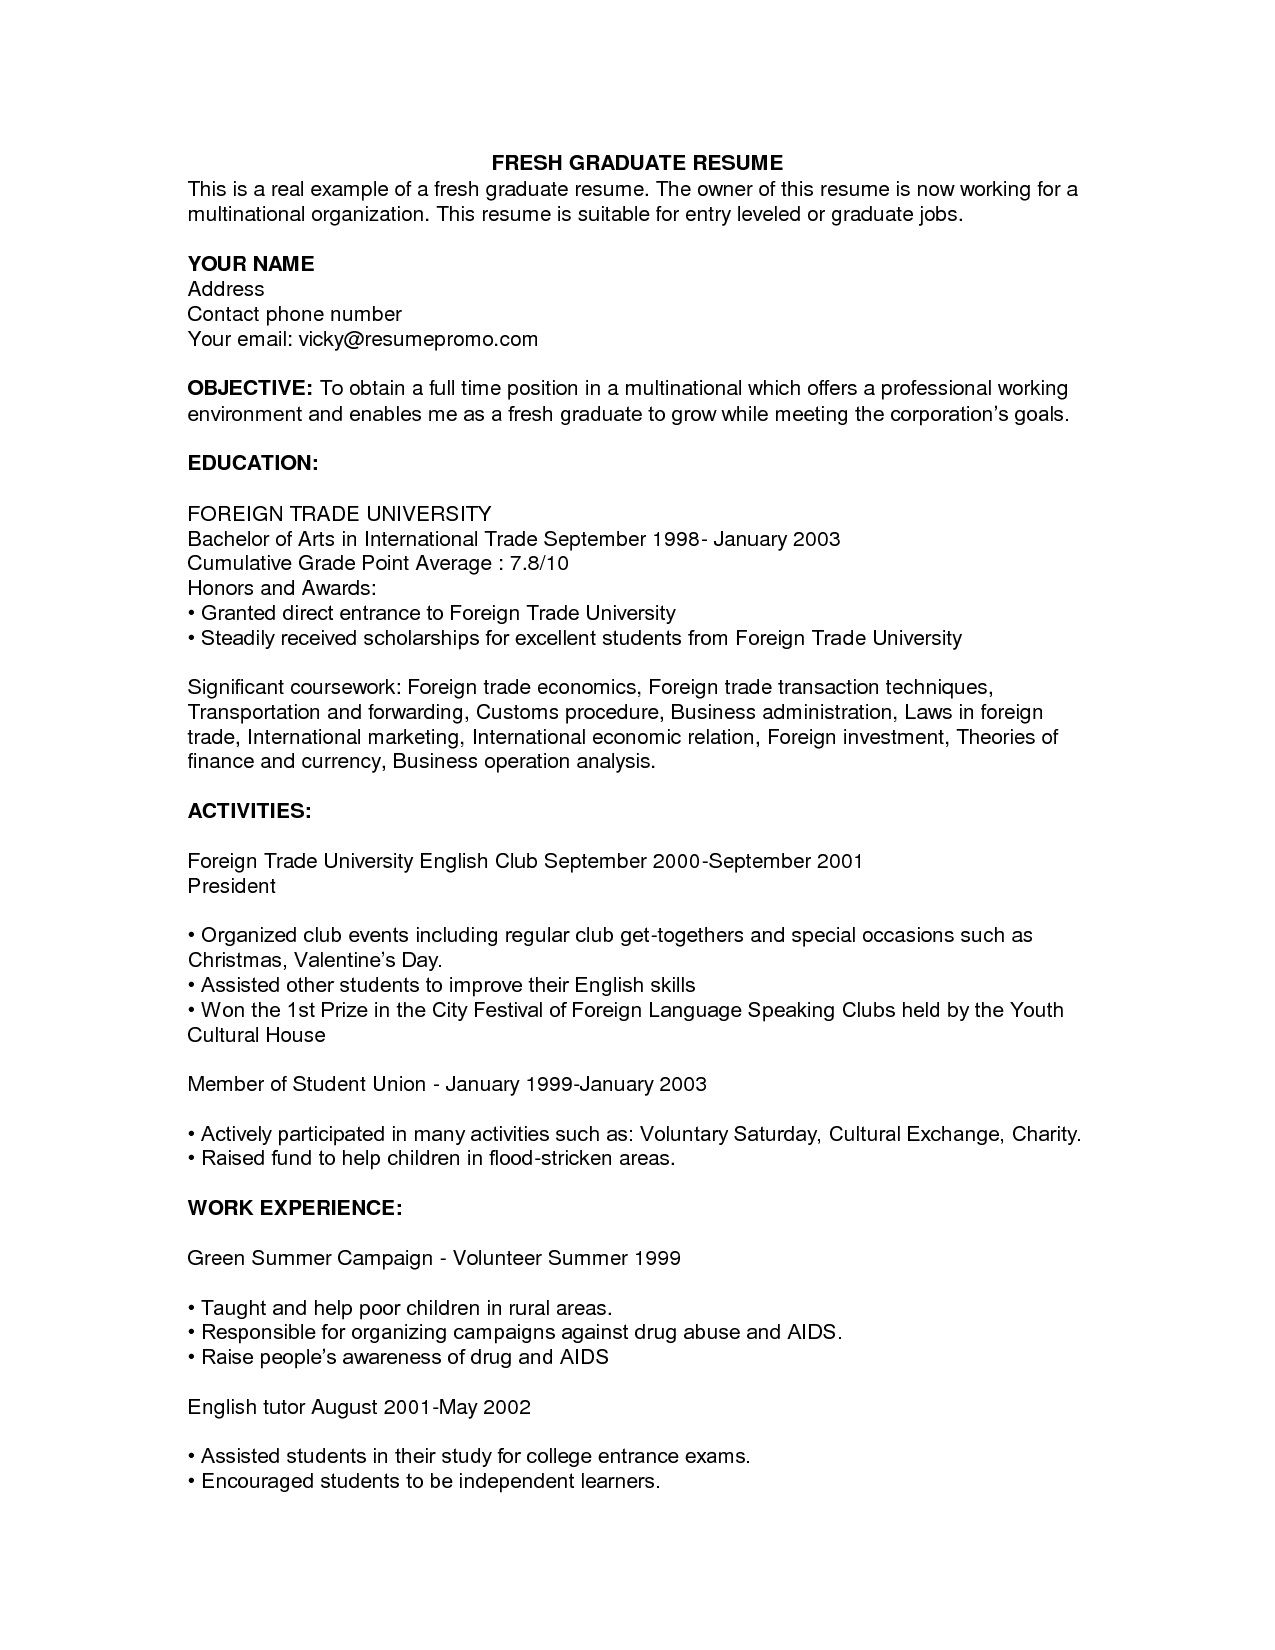 example of resume for fresh graduate example of resume for fresh graduate are examples we